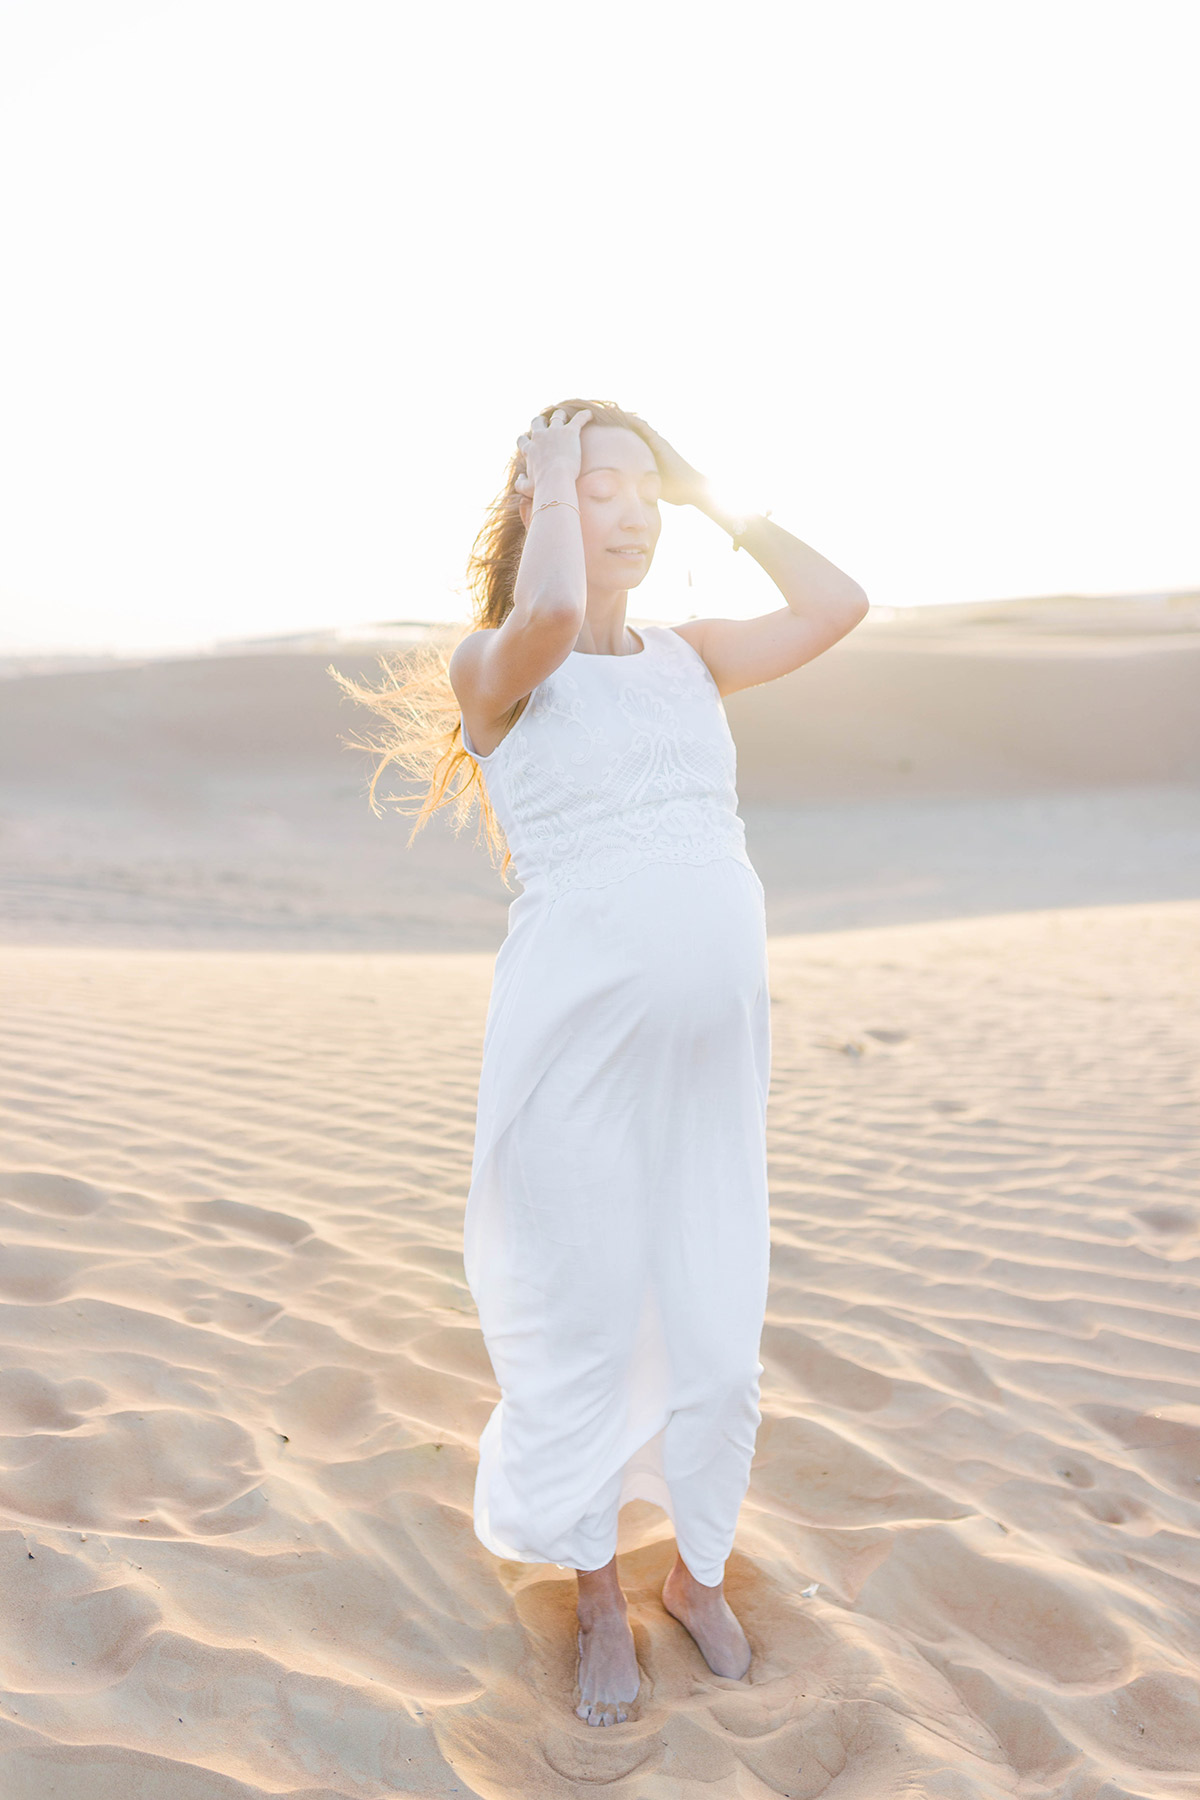 maternity-photoshoot-in-dubai-desert-uae